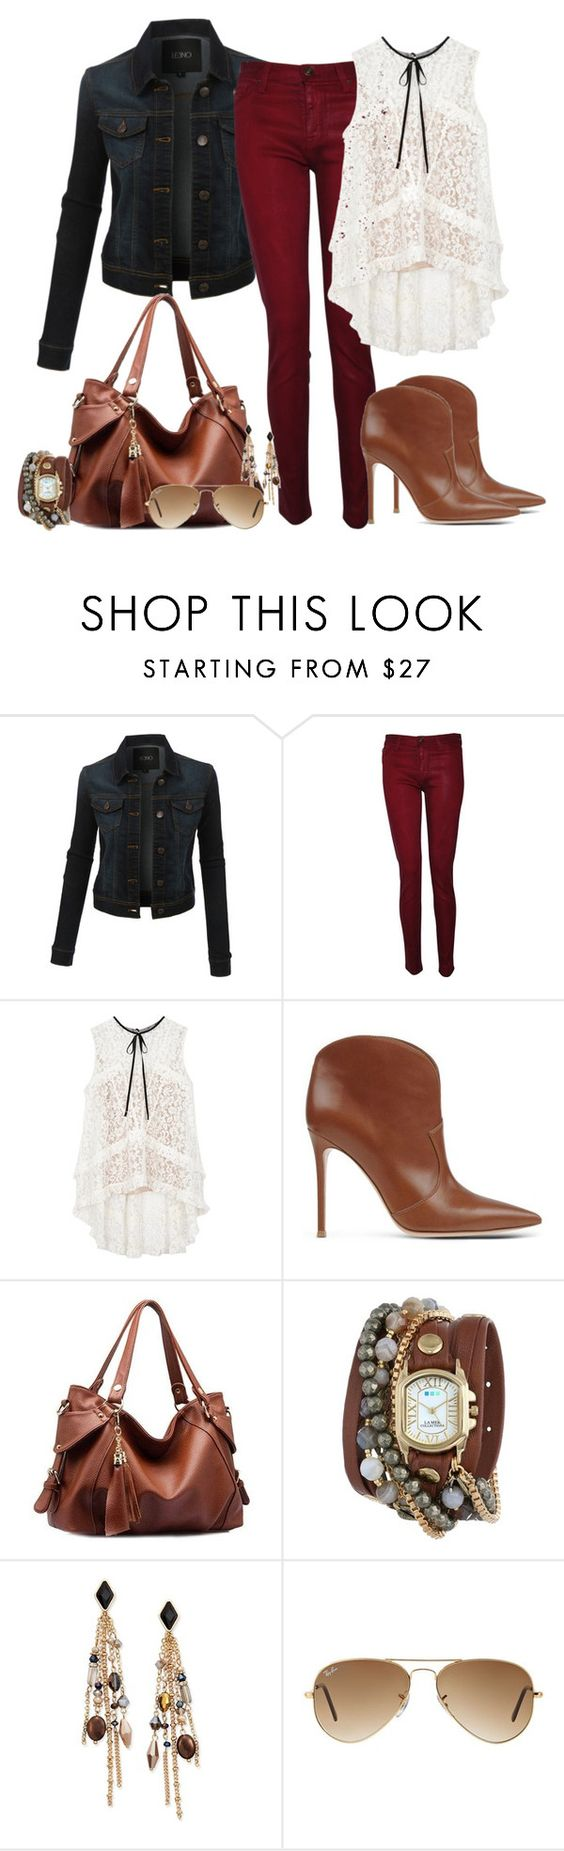 """""""Lace [3]"""" by myxvonwh on Polyvore featuring LE3NO, Hudson, Erdem, Gianvito Rossi, La Mer, INC International Concepts and Ray-Ban"""